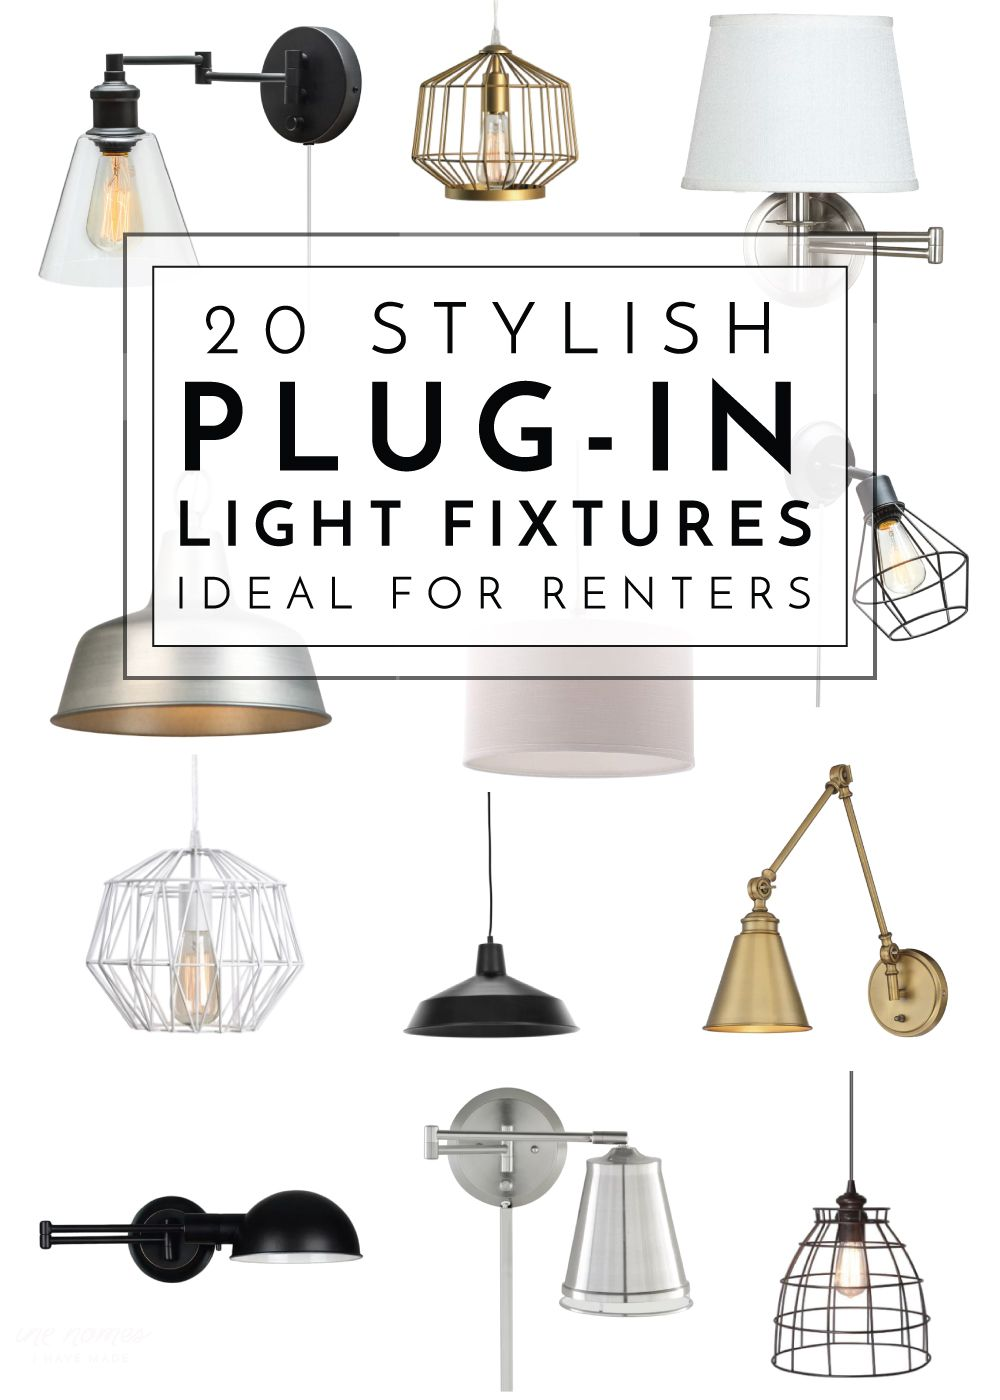 20 Stylish Plug In Light Fixtures Ideal For Renters The Homes I Have Made Dining Room Light Fixtures Diy Light Fixtures Light Fixtures